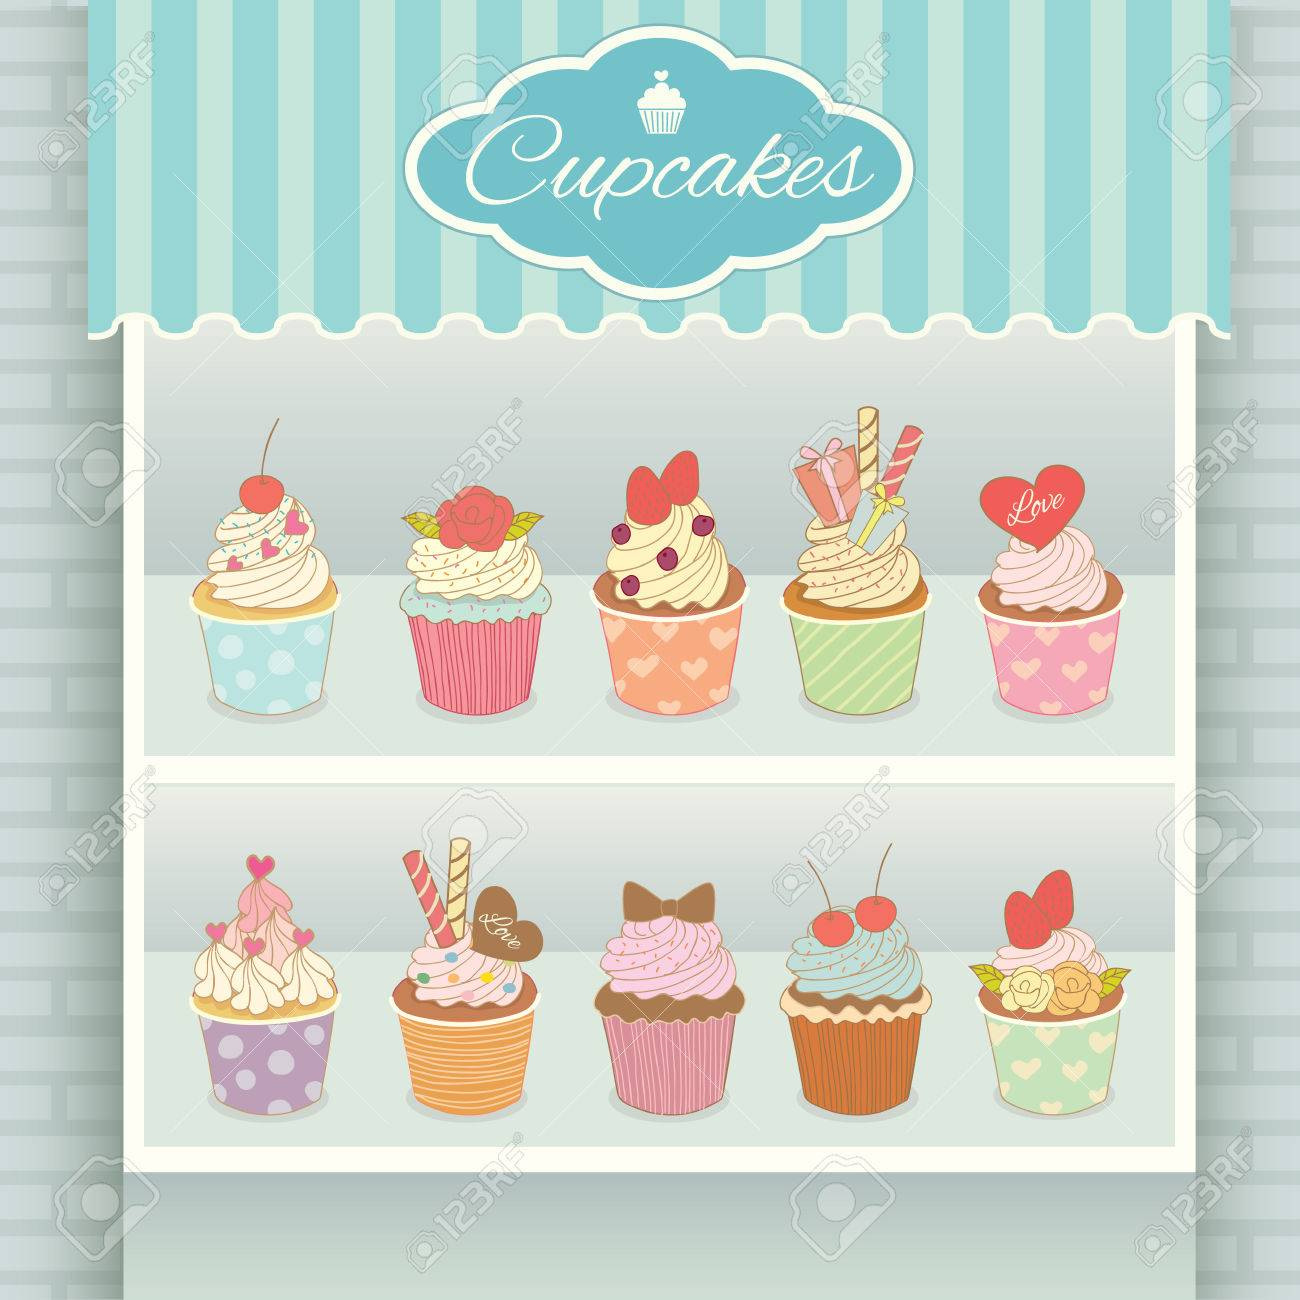 illustration vector various cupcakes menu display on shelf in